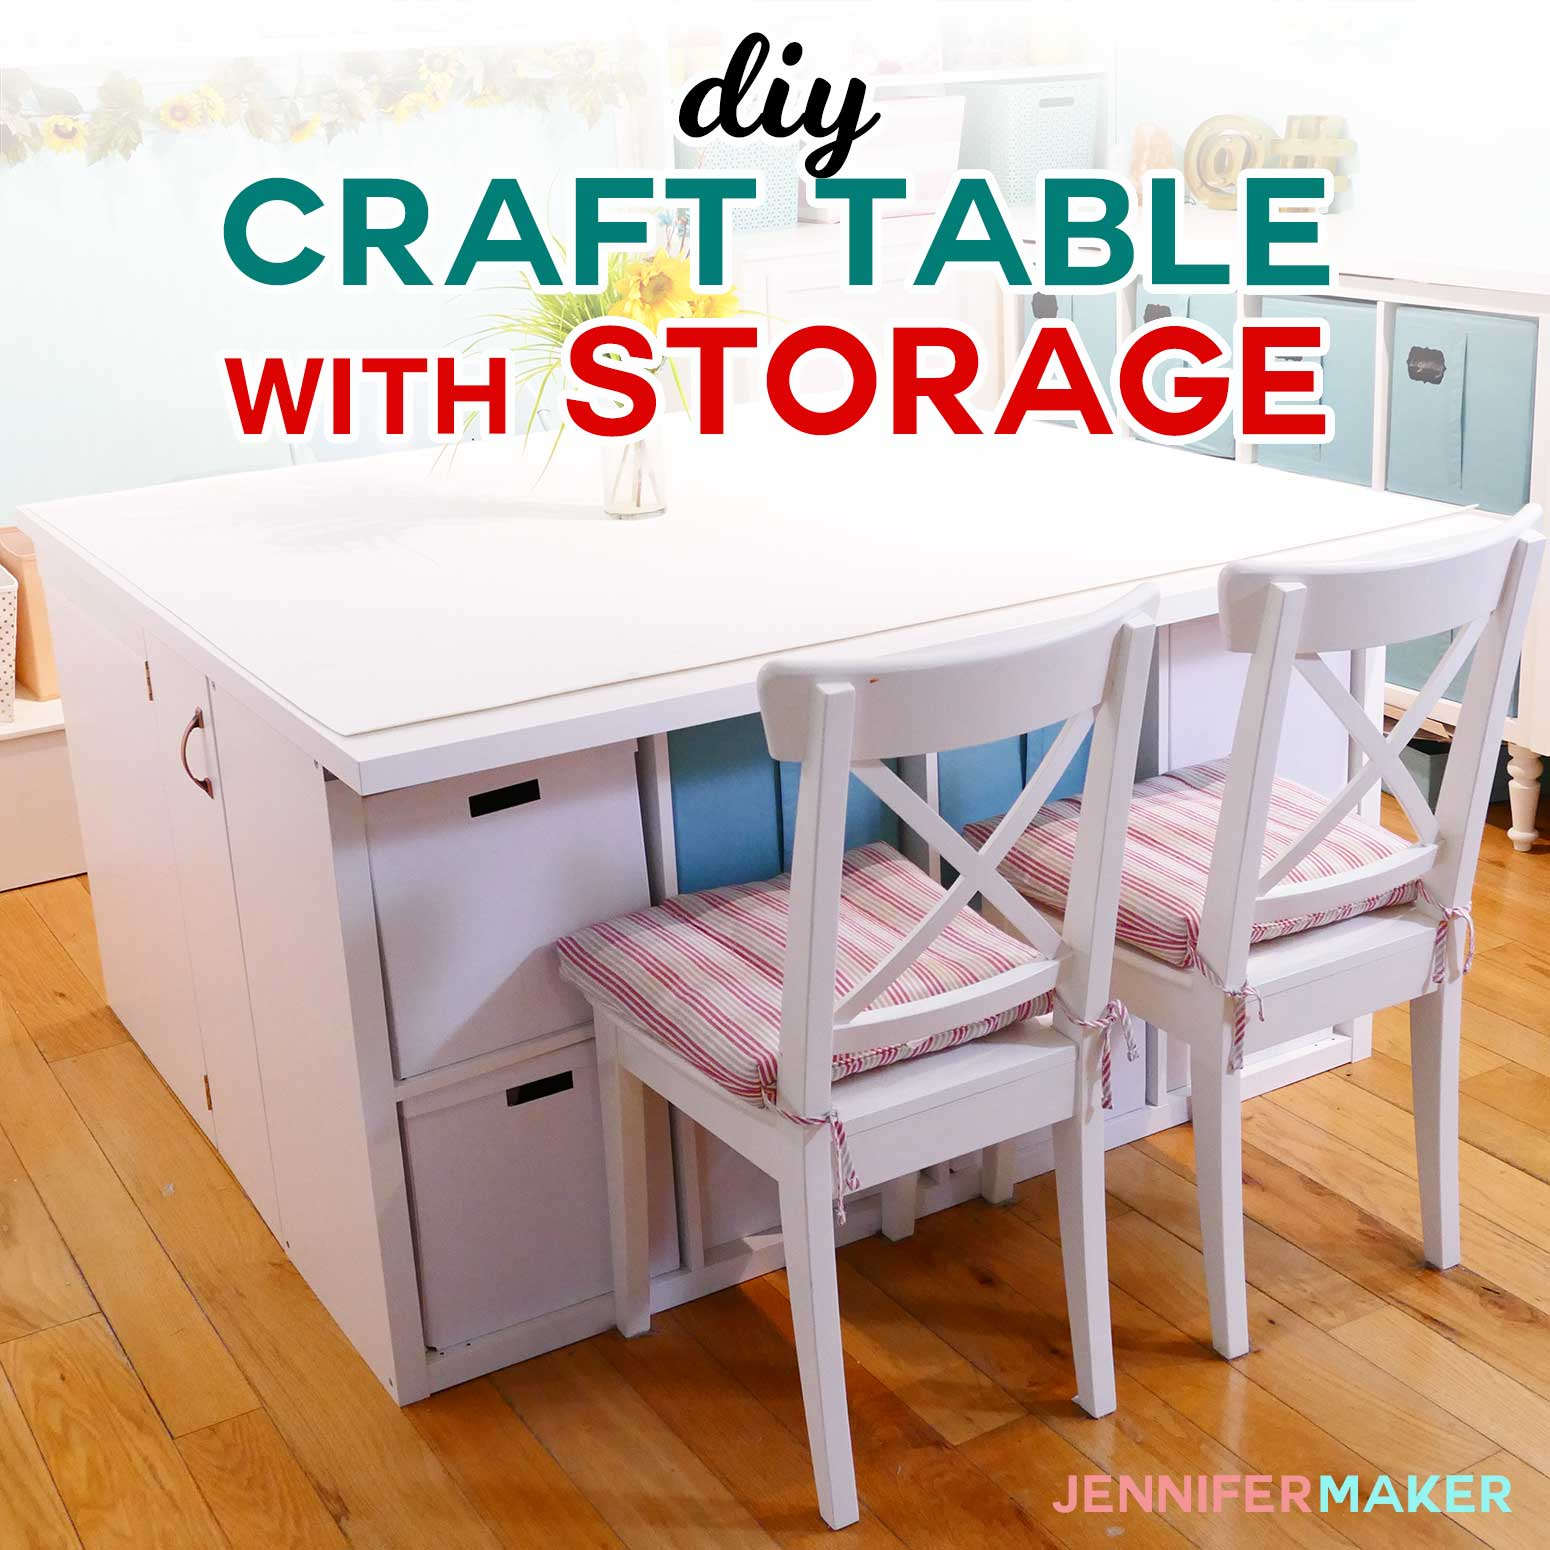 Ikea Box Holder Diy Craft Table With Storage My Ikea Hack Jennifer Maker